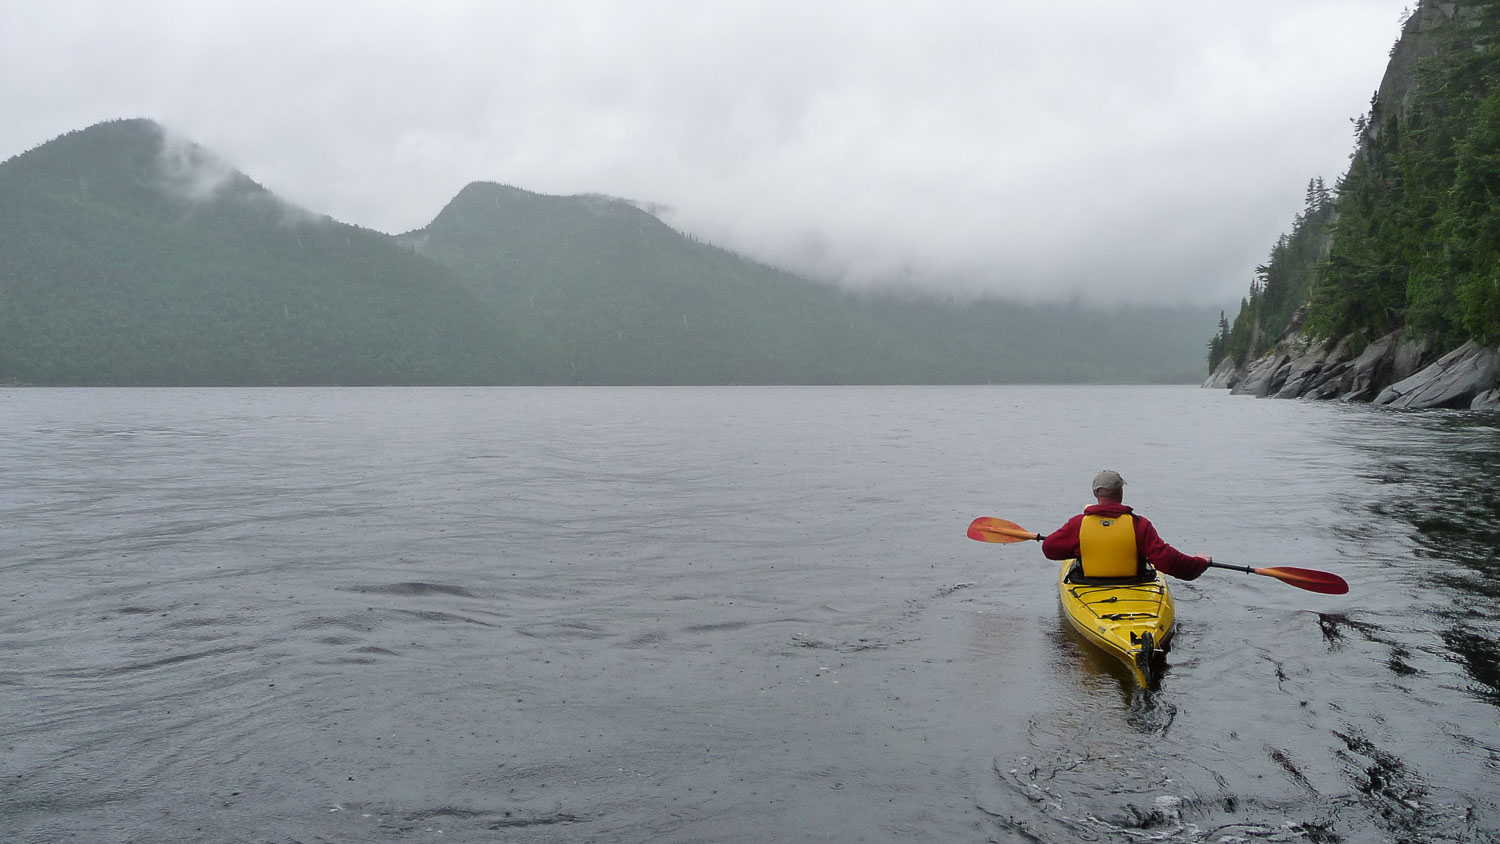 The great trails are also on the water, here at the St. Lawrence Marine Park in the Saguenay Fjord